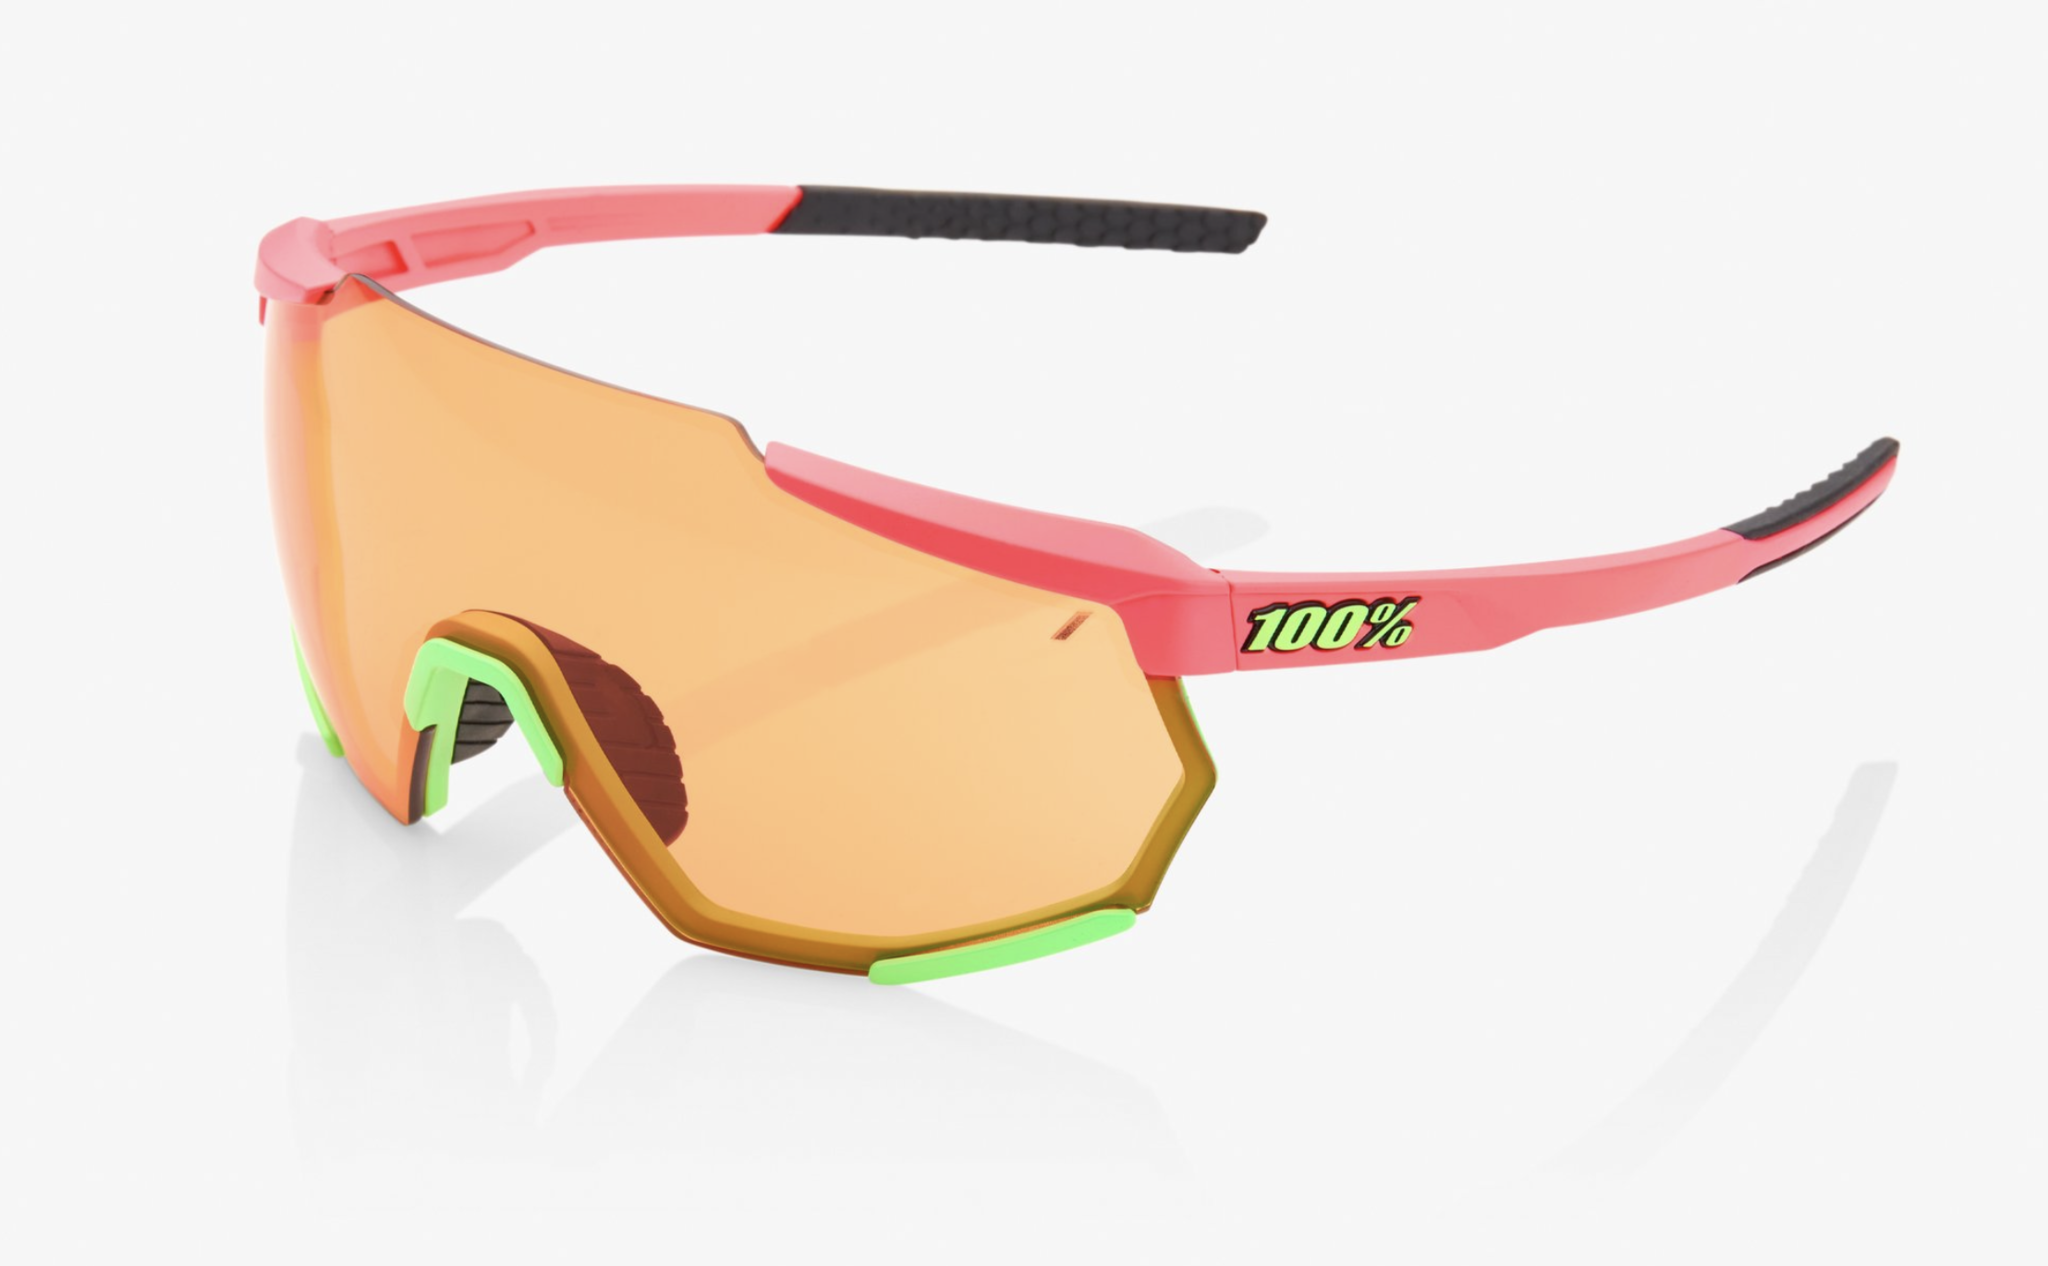 Racetrap Sunglasses, Matte Washed Out Neon Pink frame - Persimmon Lens-1